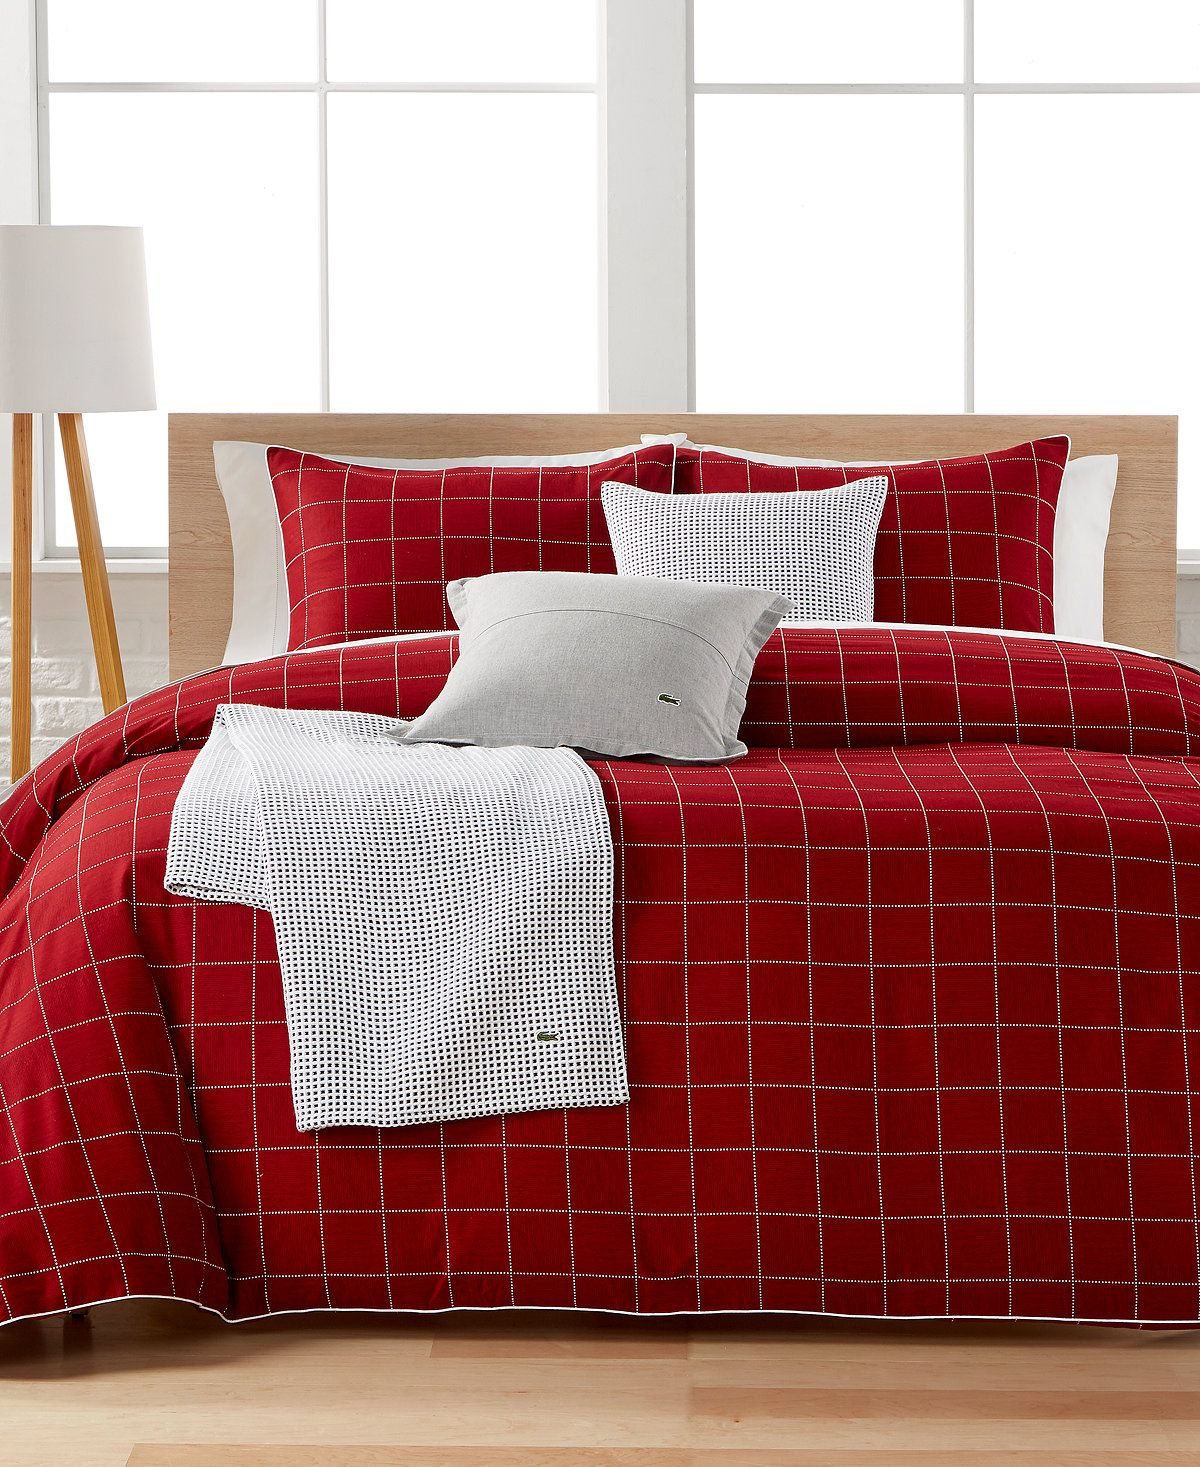 Lacoste Home Closeout Leste Red Twin Twin Xl Comforter Set Reviews Bedding Collections Bed Bath Macy S Red Bedding Red Comforter Sets Comforter Sets